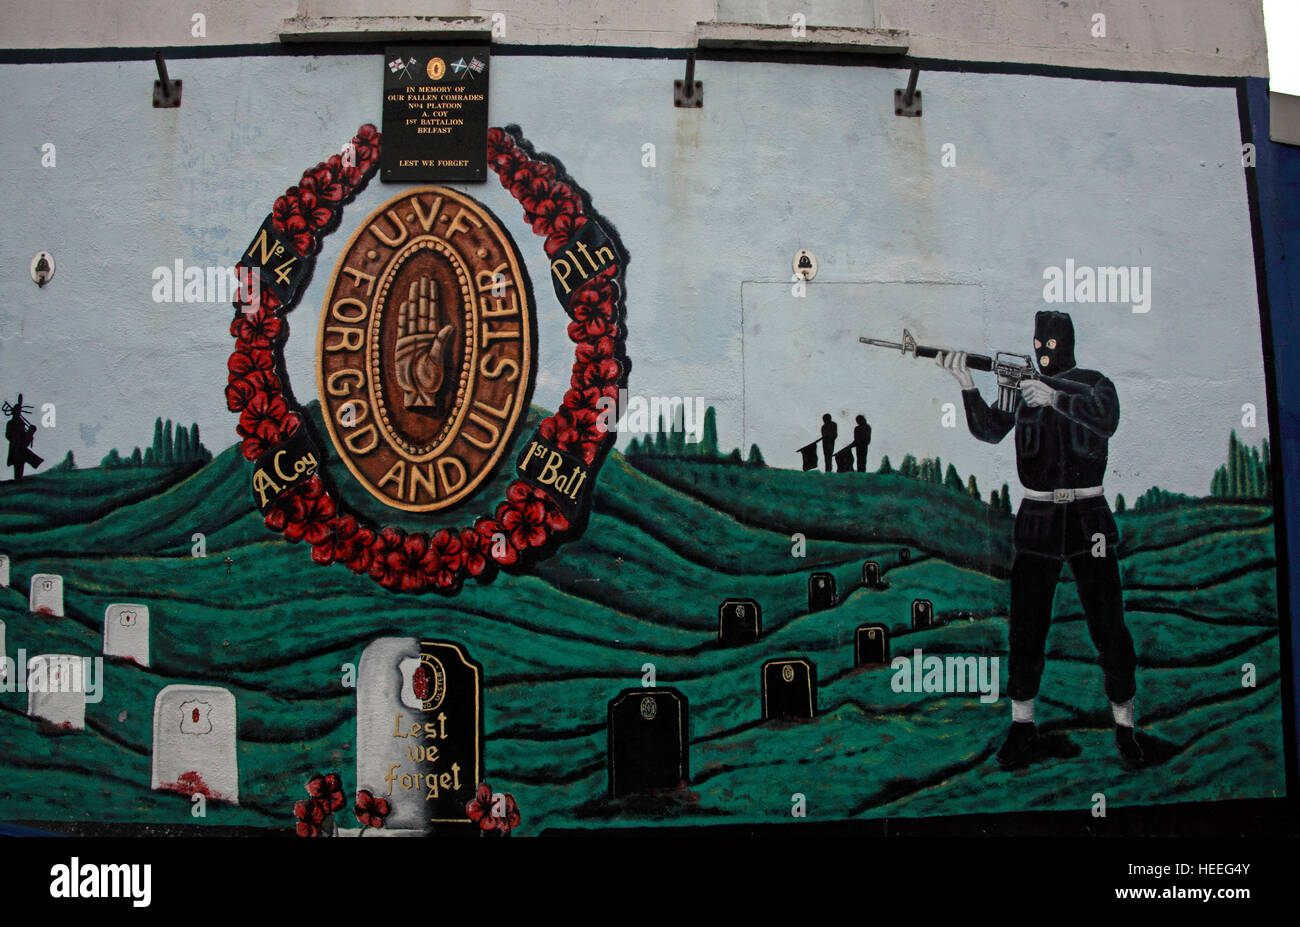 Mural,art,British,Union,wall,walls,gable end,gable,end,Northern,Irish,Republican,violence,para,military,paramilitary,fallen,Martyrs,martyr,street,rd,road,painting,painted,symbolism,Loyalist,culture,history,community,soldier,pointing,rifle,sniper,God,and,Ulster,in,graveyard,poppy,poppies,GoTonySmith,@HotpixUK,Tony,Smith,UK,GB,Great,Britain,United,Kingdom,Irish,British,Ireland,problem,with,problem with,issue with,NI,Northern,Northern Ireland,Belfast,City,Centre,Art,Artists,the,troubles,The Troubles,Good Friday Agreement,Peace,honour,painting,wall,walls,tribute,republicanism,Fight,Justice,West,Beal,feirste,martyrs,social,tour,tourism,tourists,urban,six,counties,6,backdrop,county,Antrim,For,God,and,Ulster,For,God,&,Ulster,Belfast streets,Buy Pictures of,Buy Images Of,Images of,Stock Images,Tony Smith,United Kingdom,Great Britain,British Isles